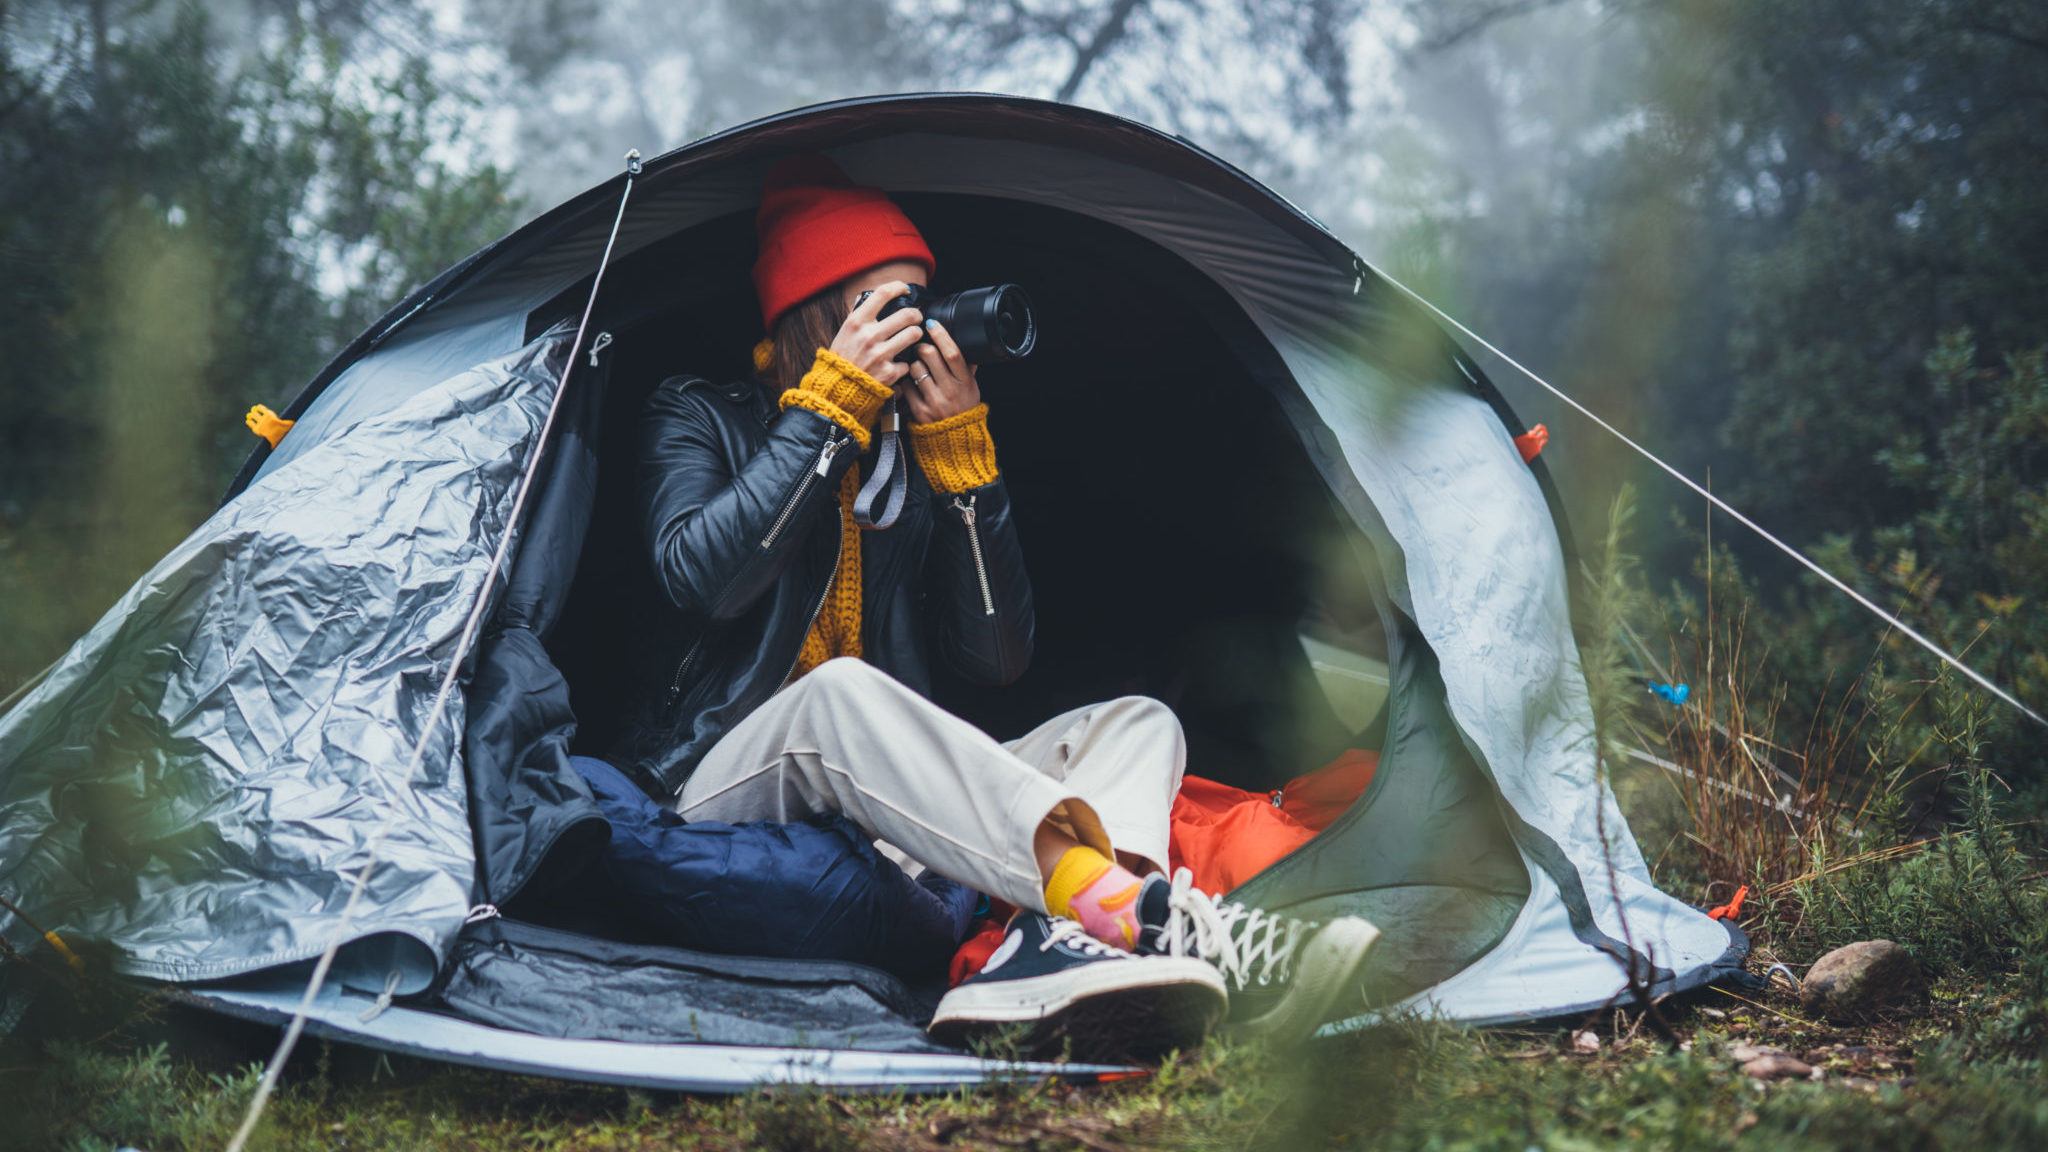 Things to Do While Camping in the Rain